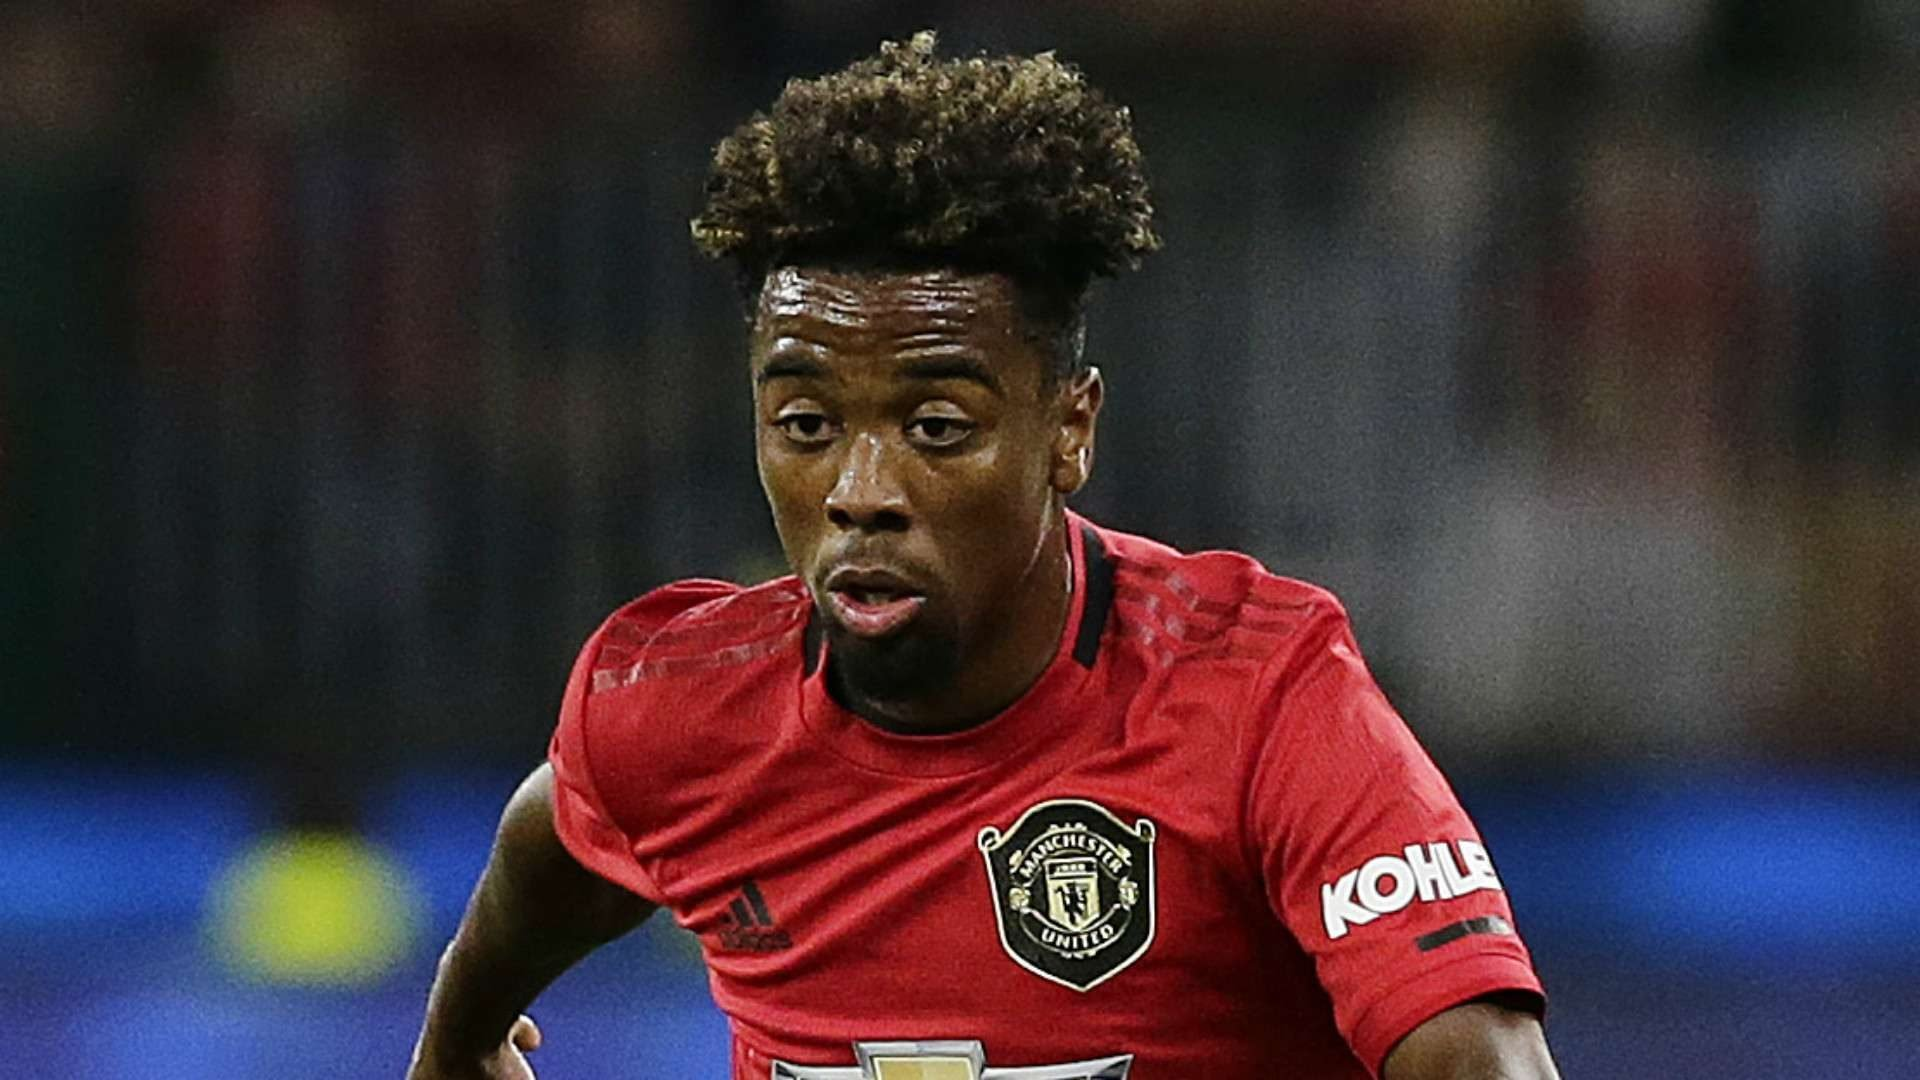 Mercato Manchester United : prolongation en vue pour Angel Gomes